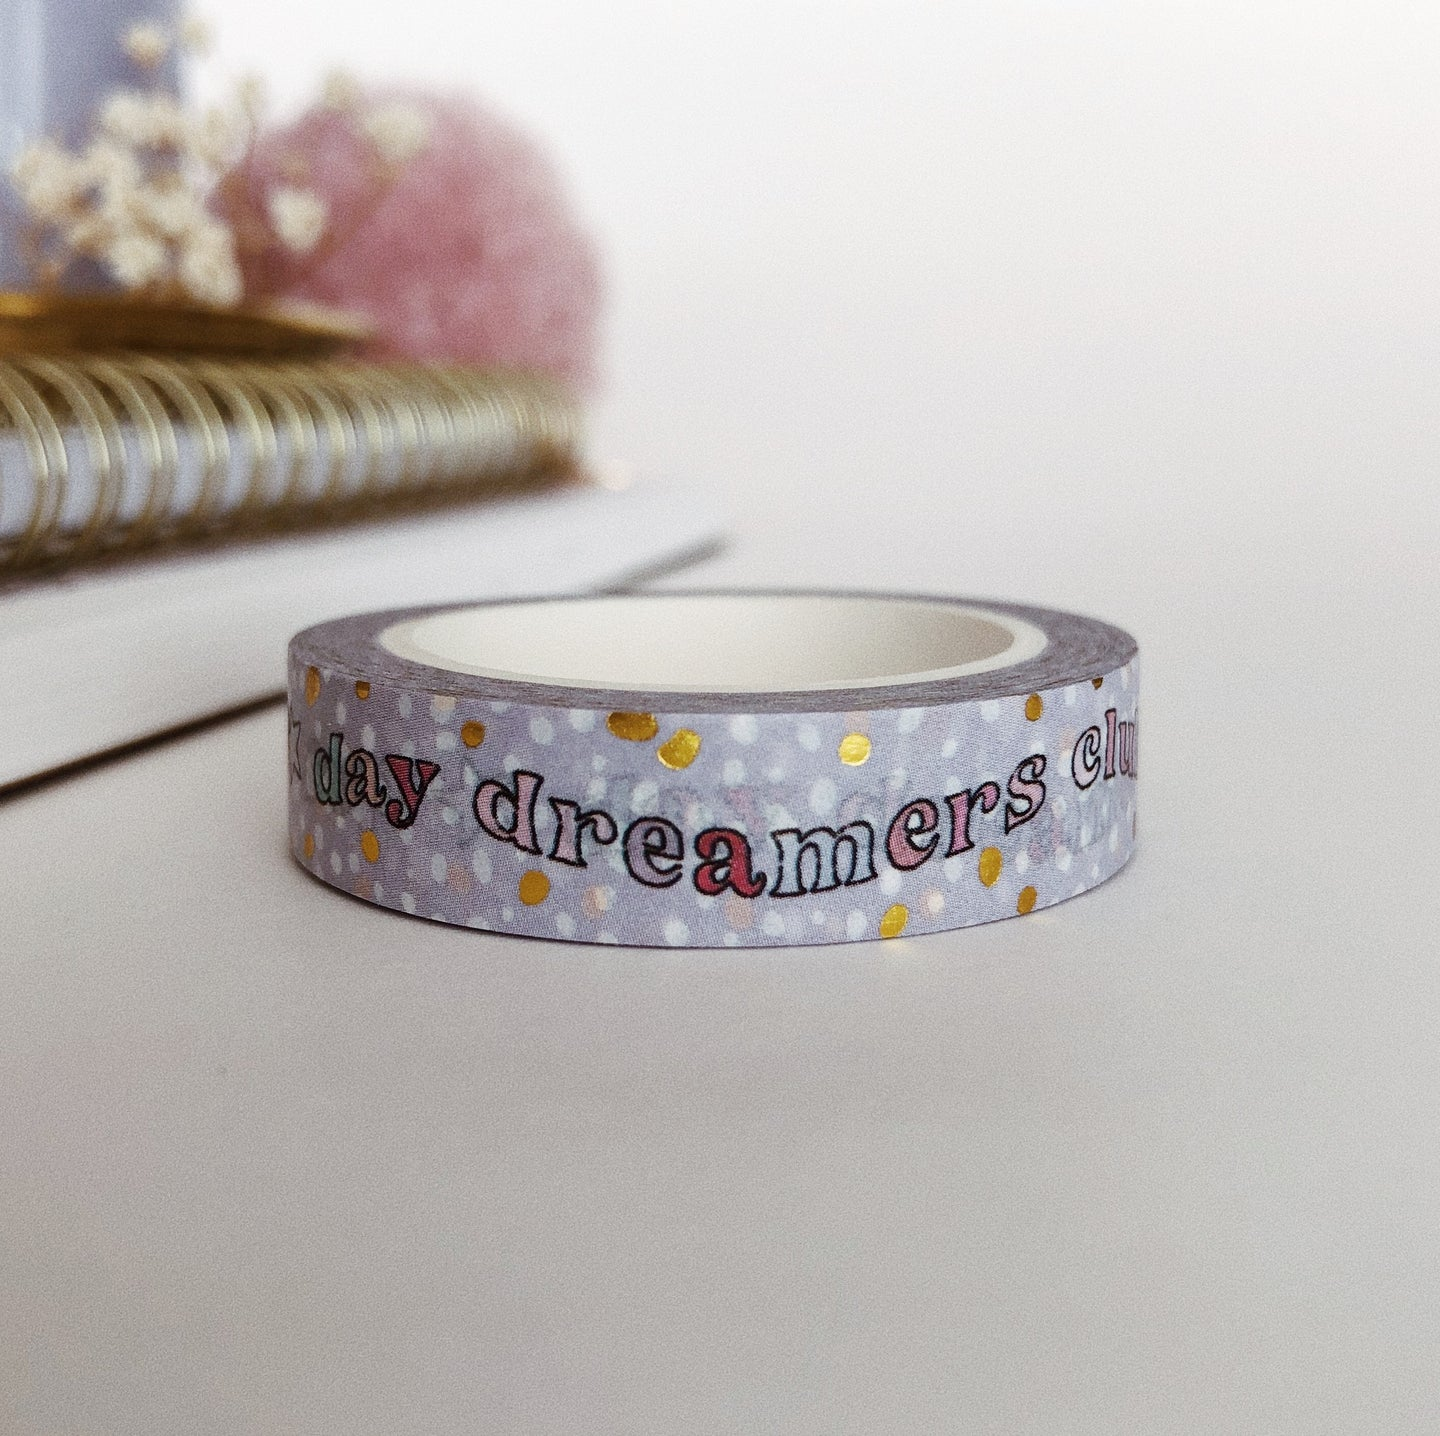 Day Dreamer - Washi Tape